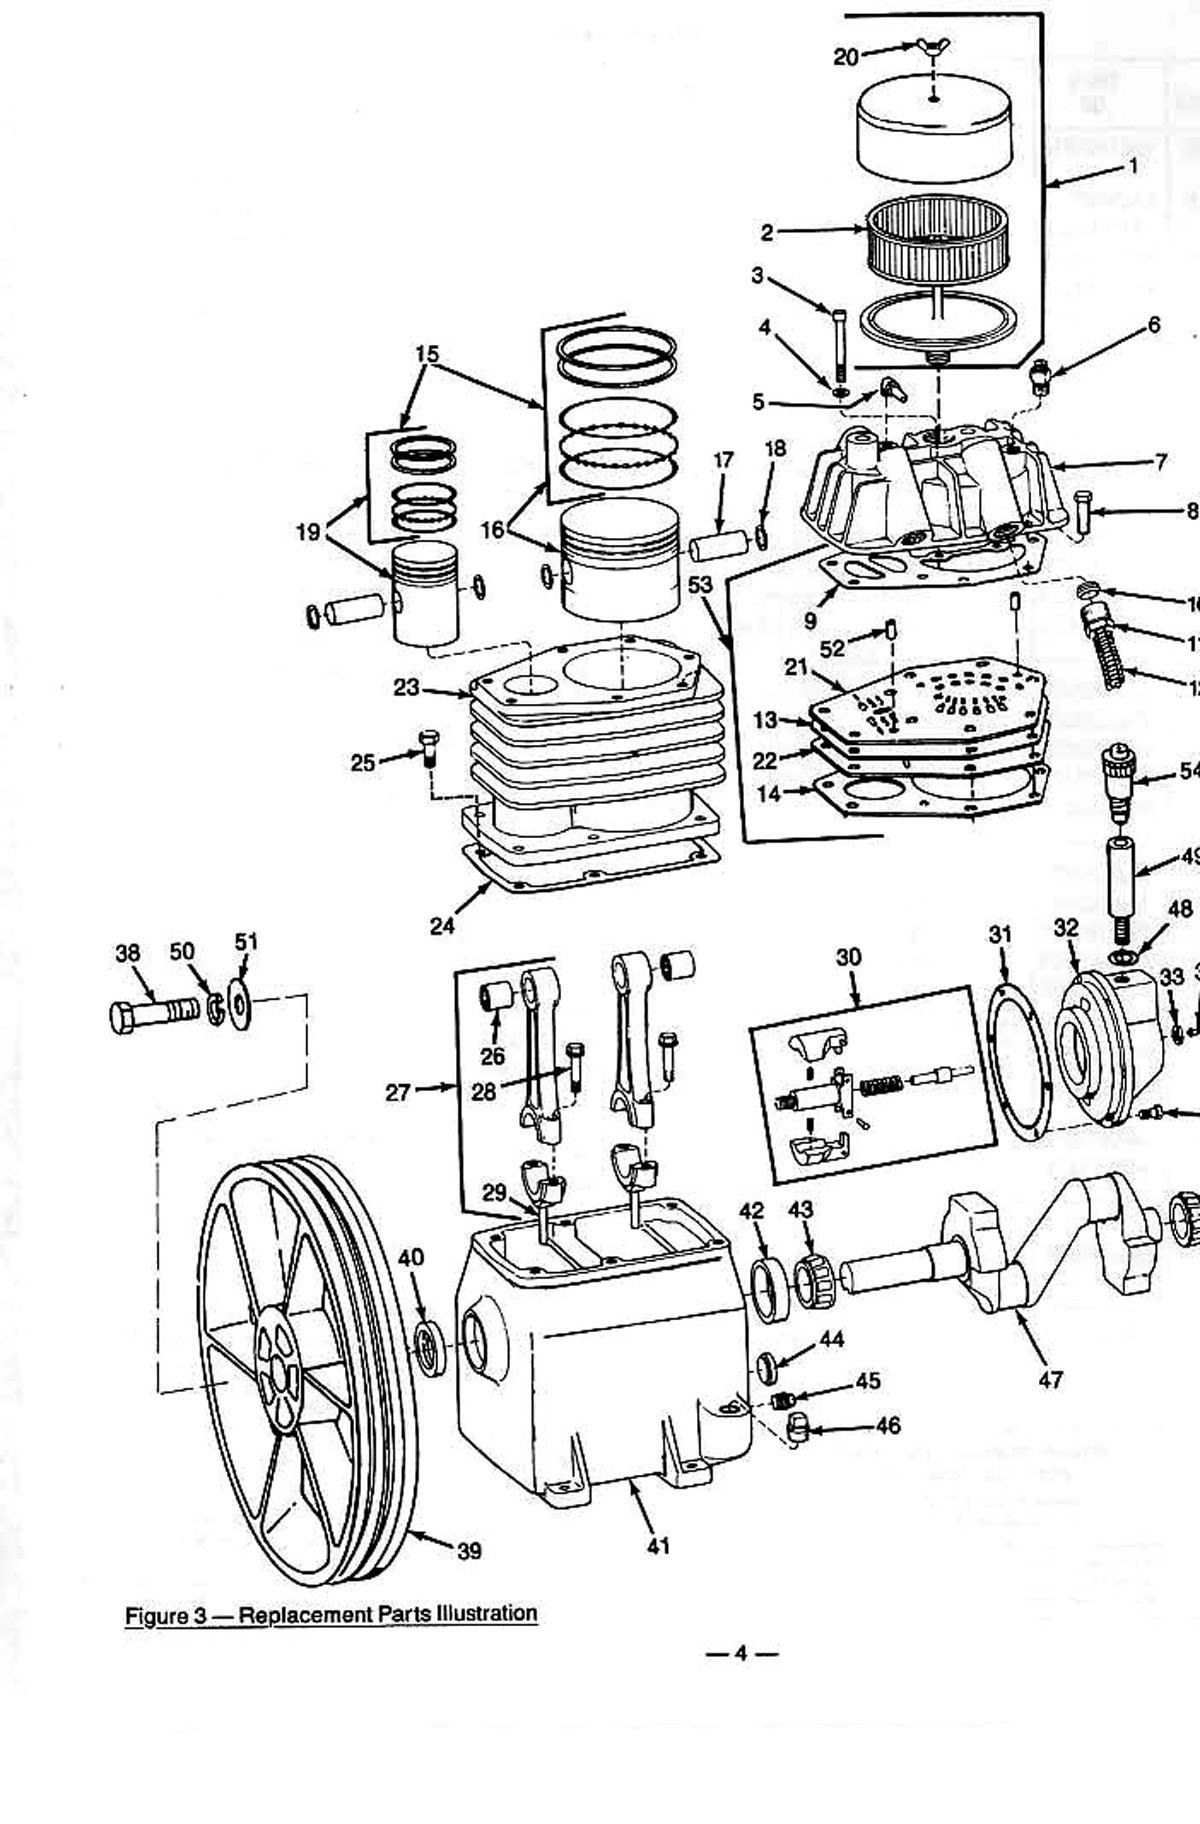 Two Stroke Engine Parts Diagram Wiring Pocket Bike 49cc 2 Related Post